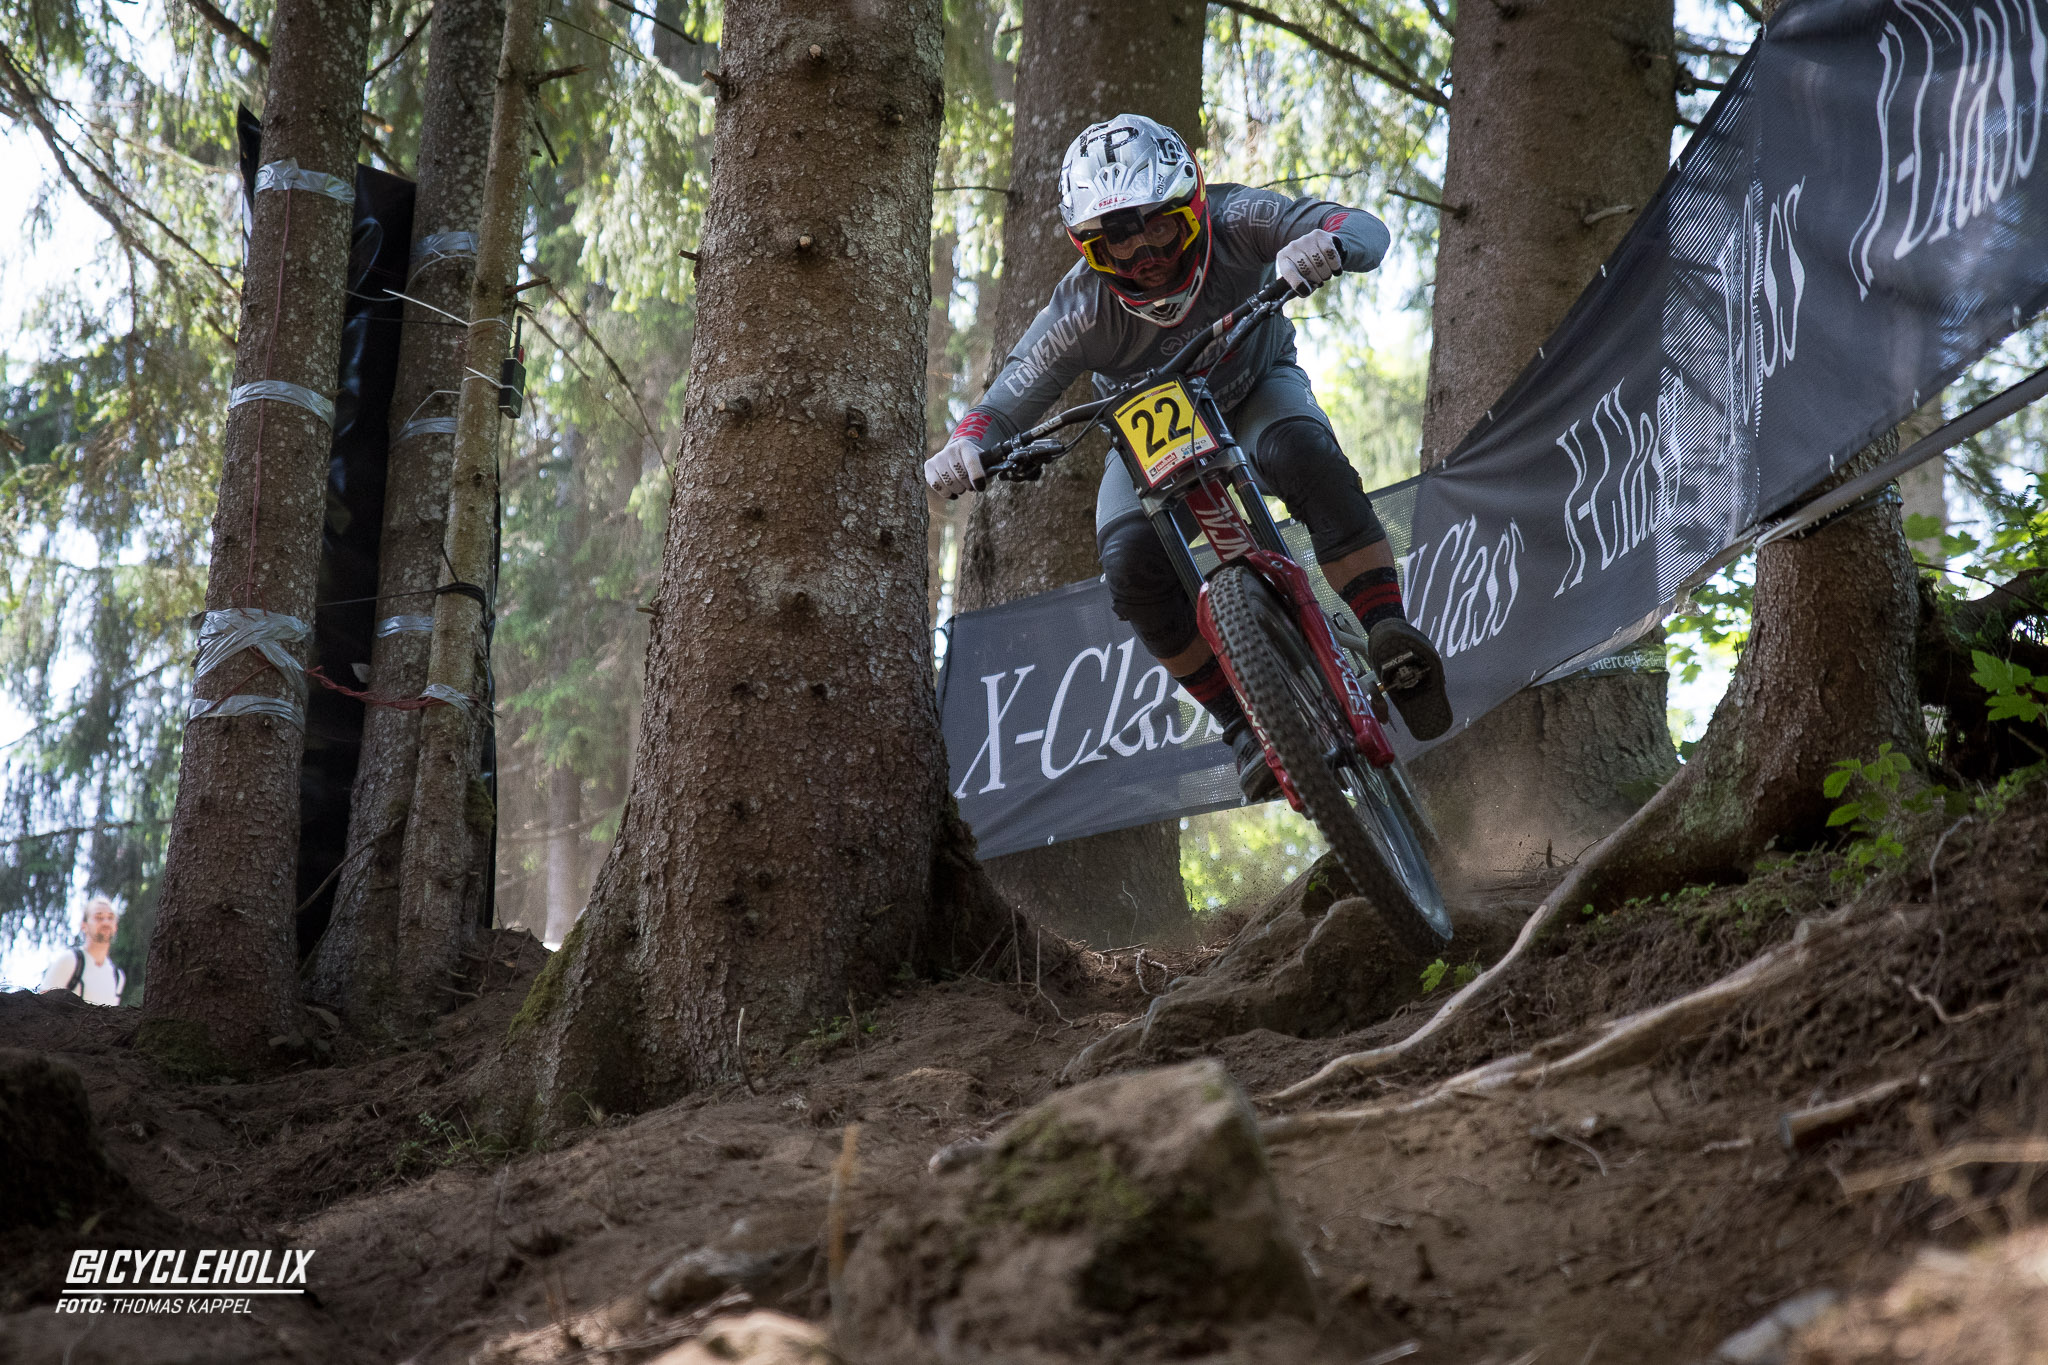 2019 Downhill Worldcup Leogang Finale Action 17